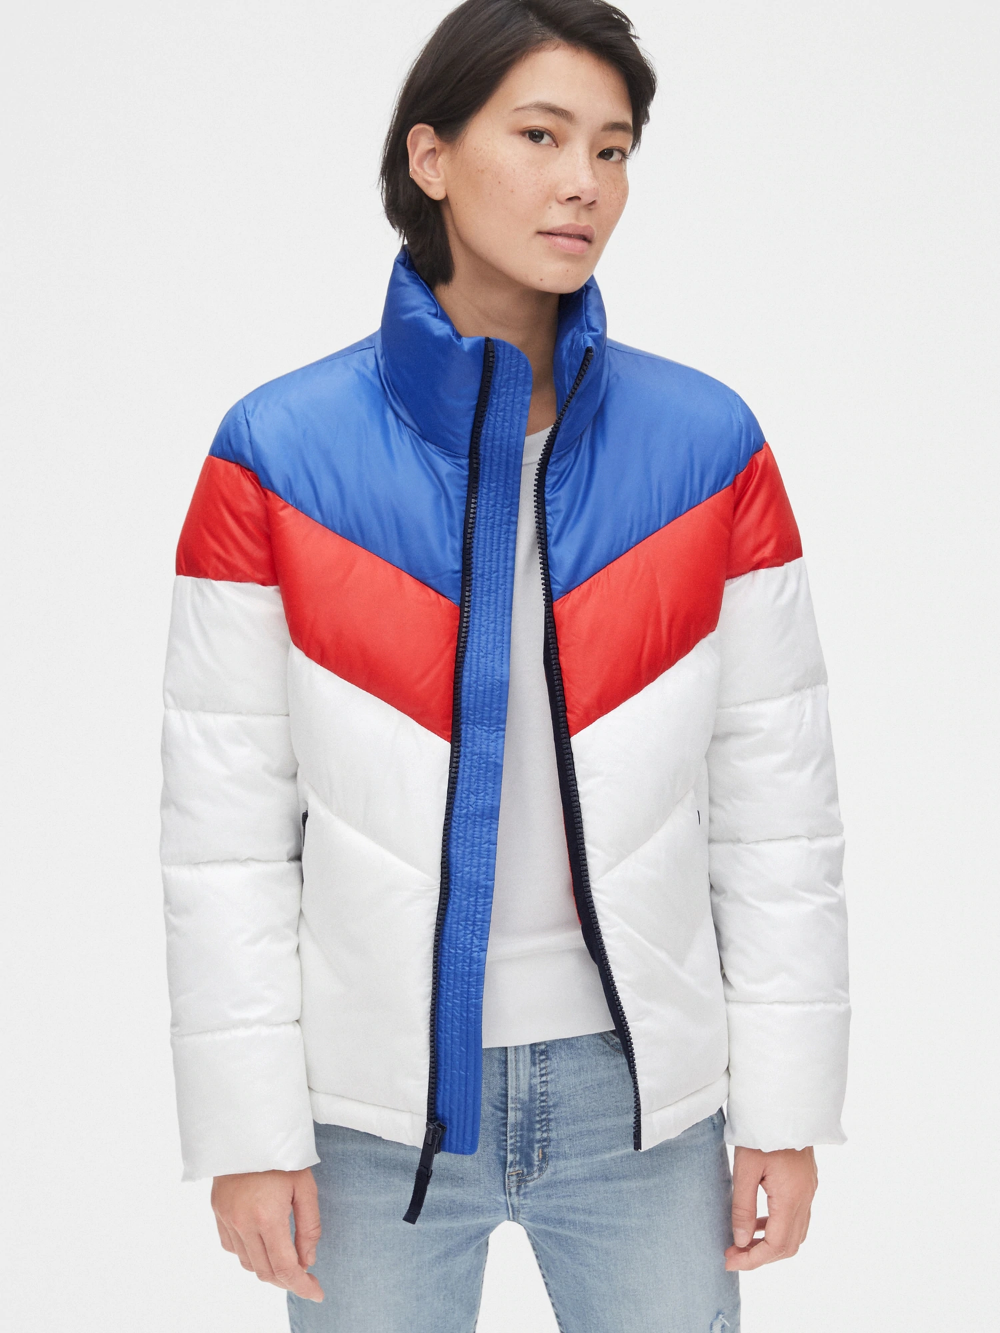 Coldcontrol Max High Shine Colorblock Puffer Jacket Gap Stripes Fashion Baby Kids Clothes Clothes [ 1333 x 1000 Pixel ]